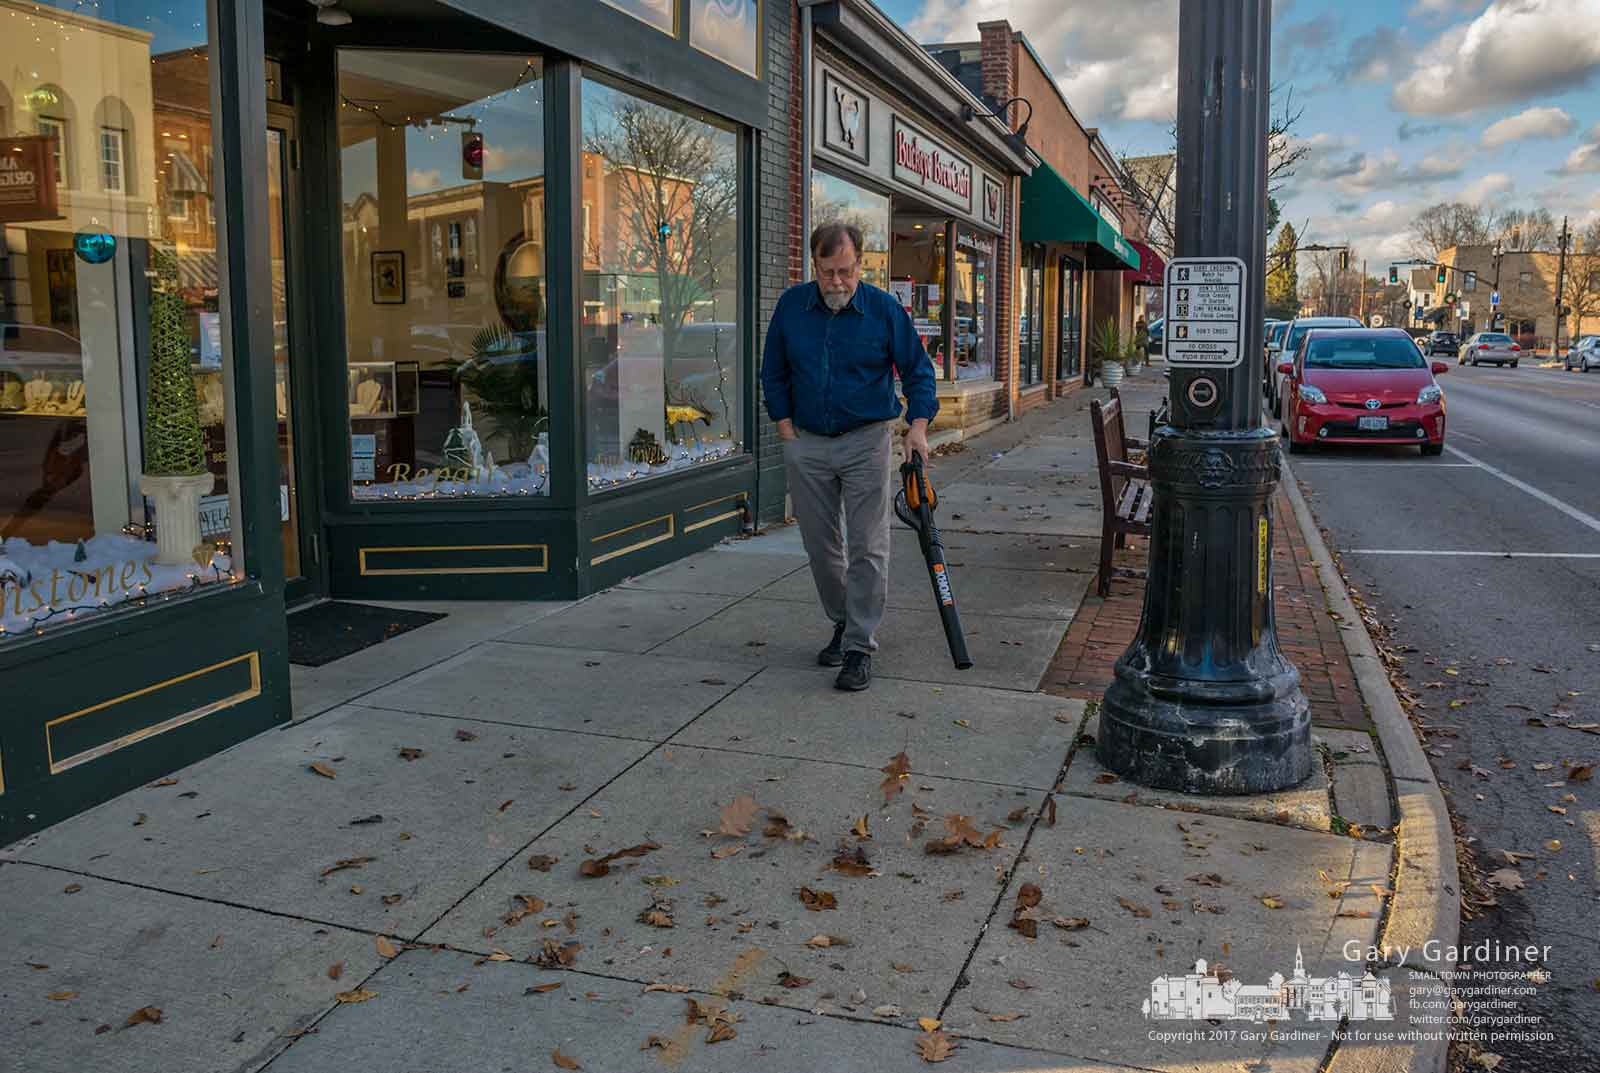 Jeweler Bill Morgan uses a battery-powered blower to clear leaves from inside and in front of his store in Uptown in what he says is continuing battle as the wind whips around the corner of his State and Main building. My Final Photo for Dec. 6, 2017.